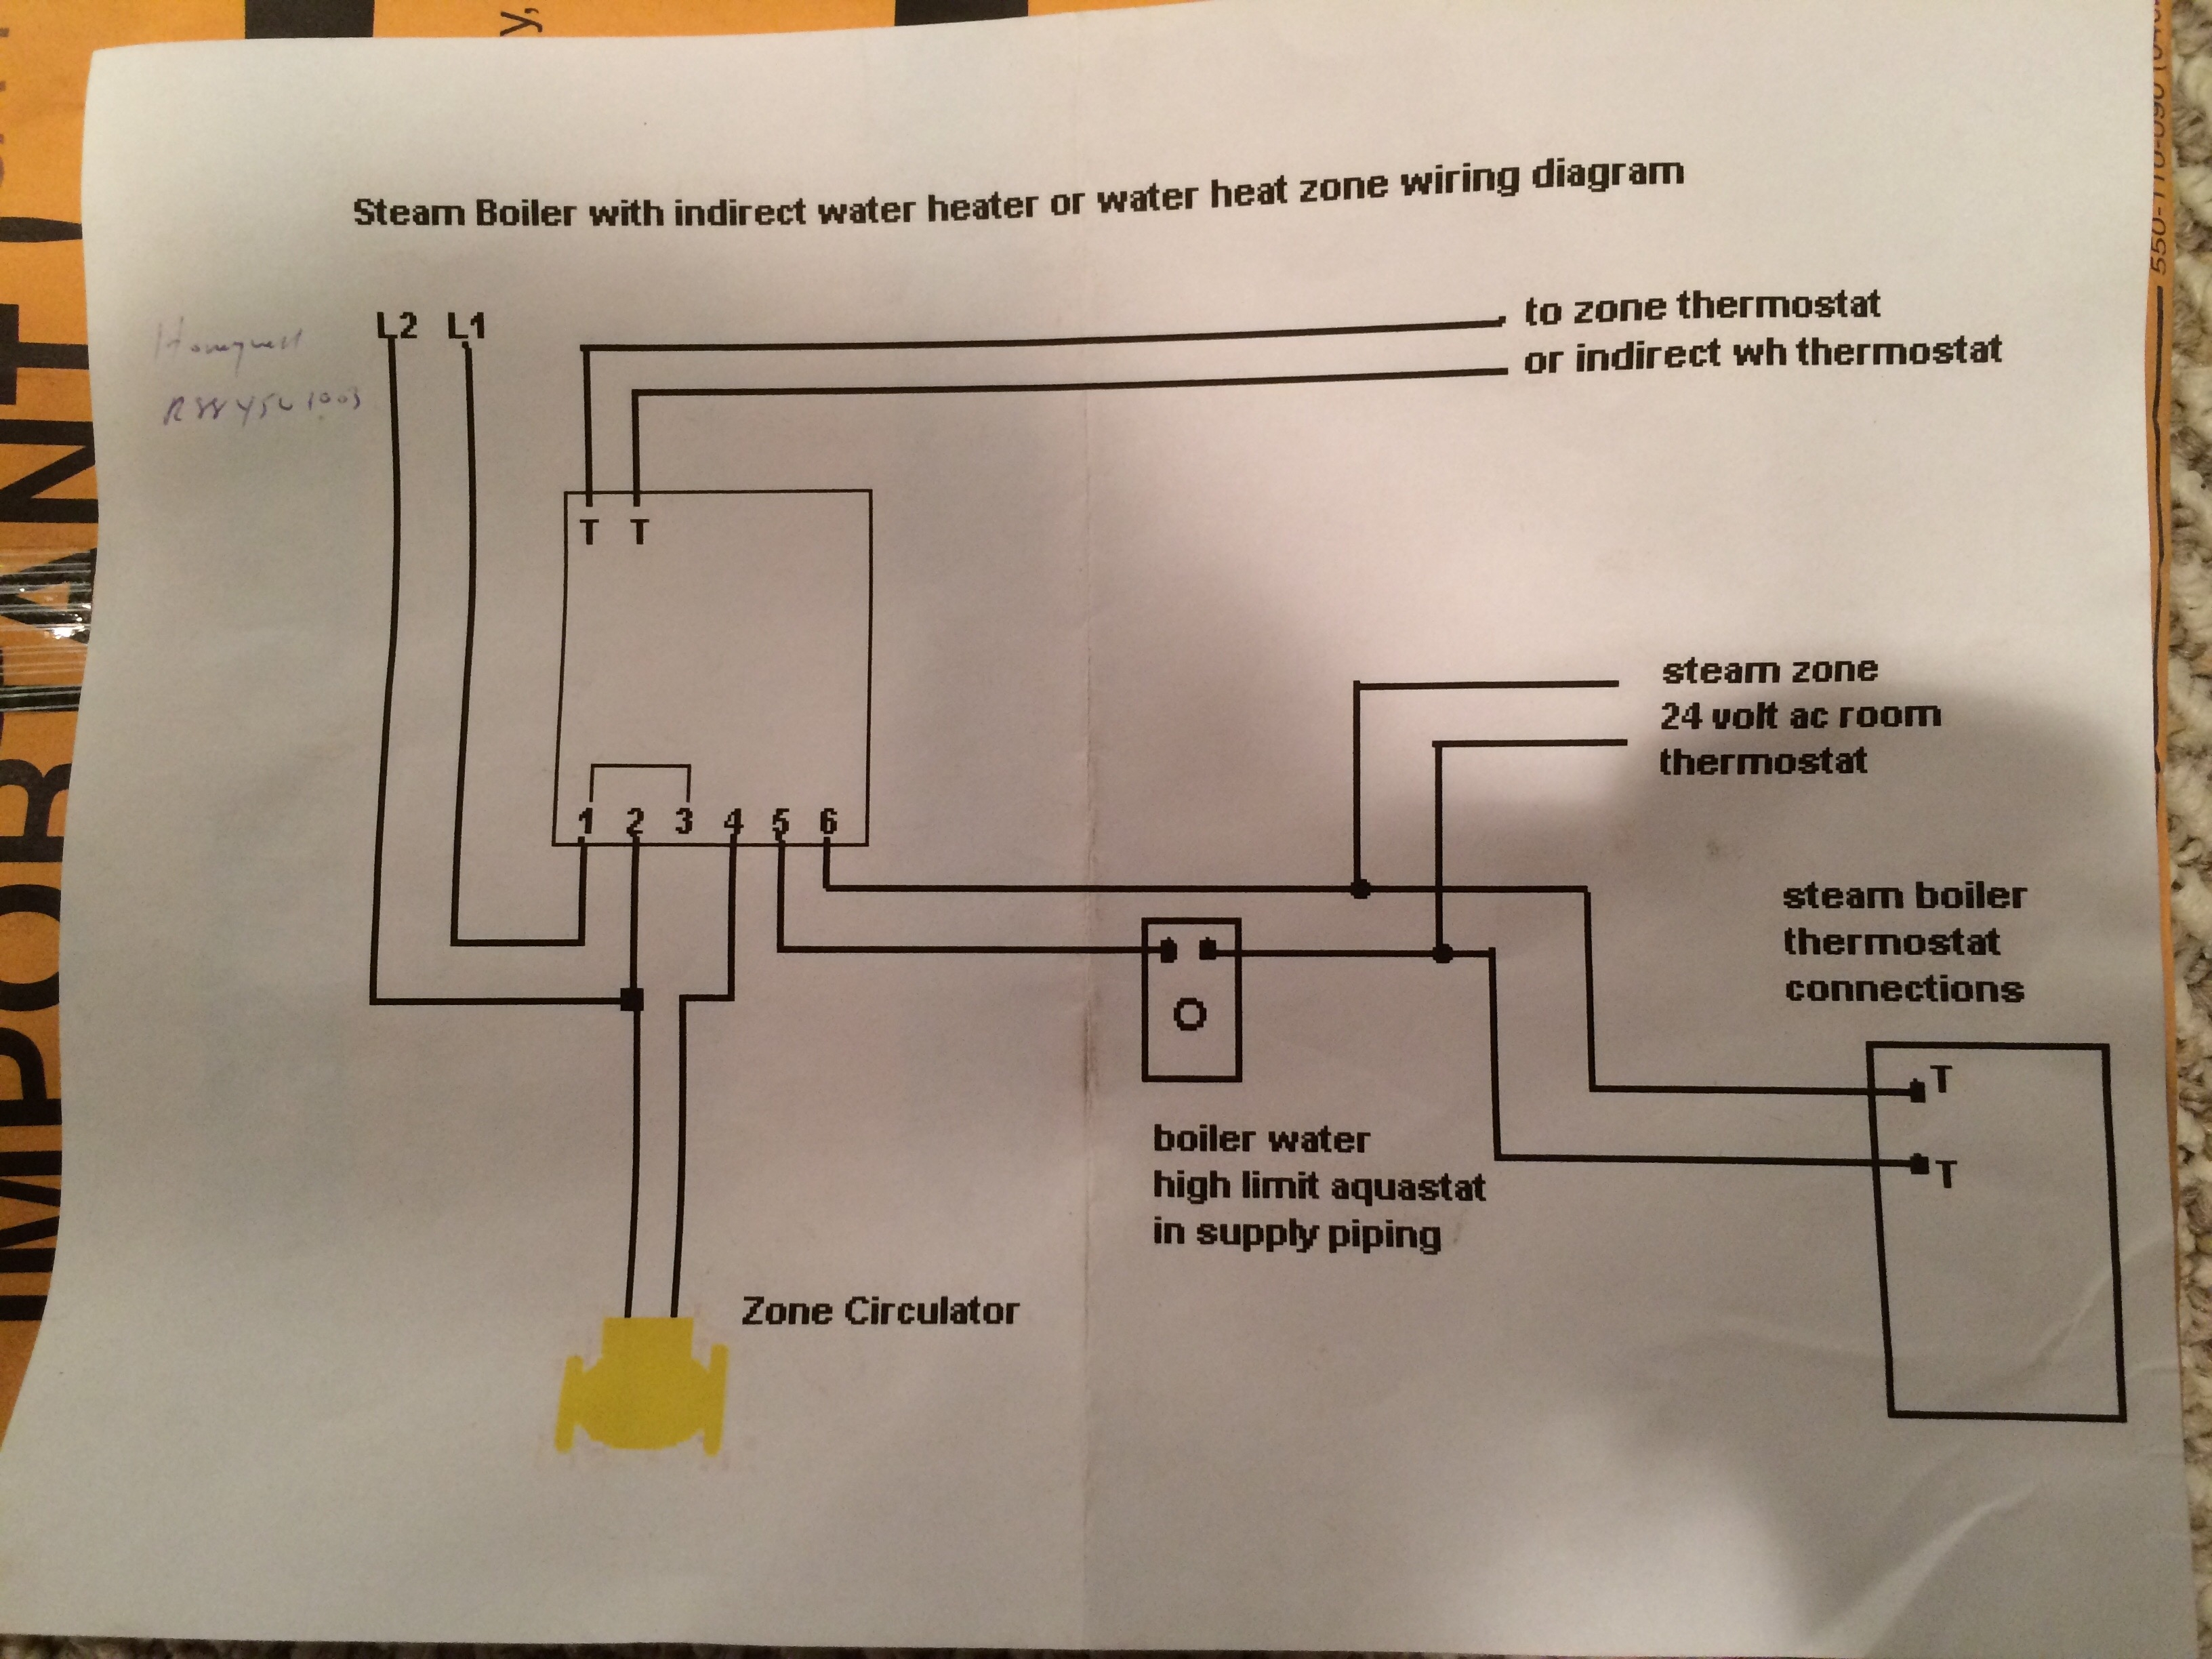 Adding Baseboard To Steam Boiler  U2014 Heating Help  The Wall